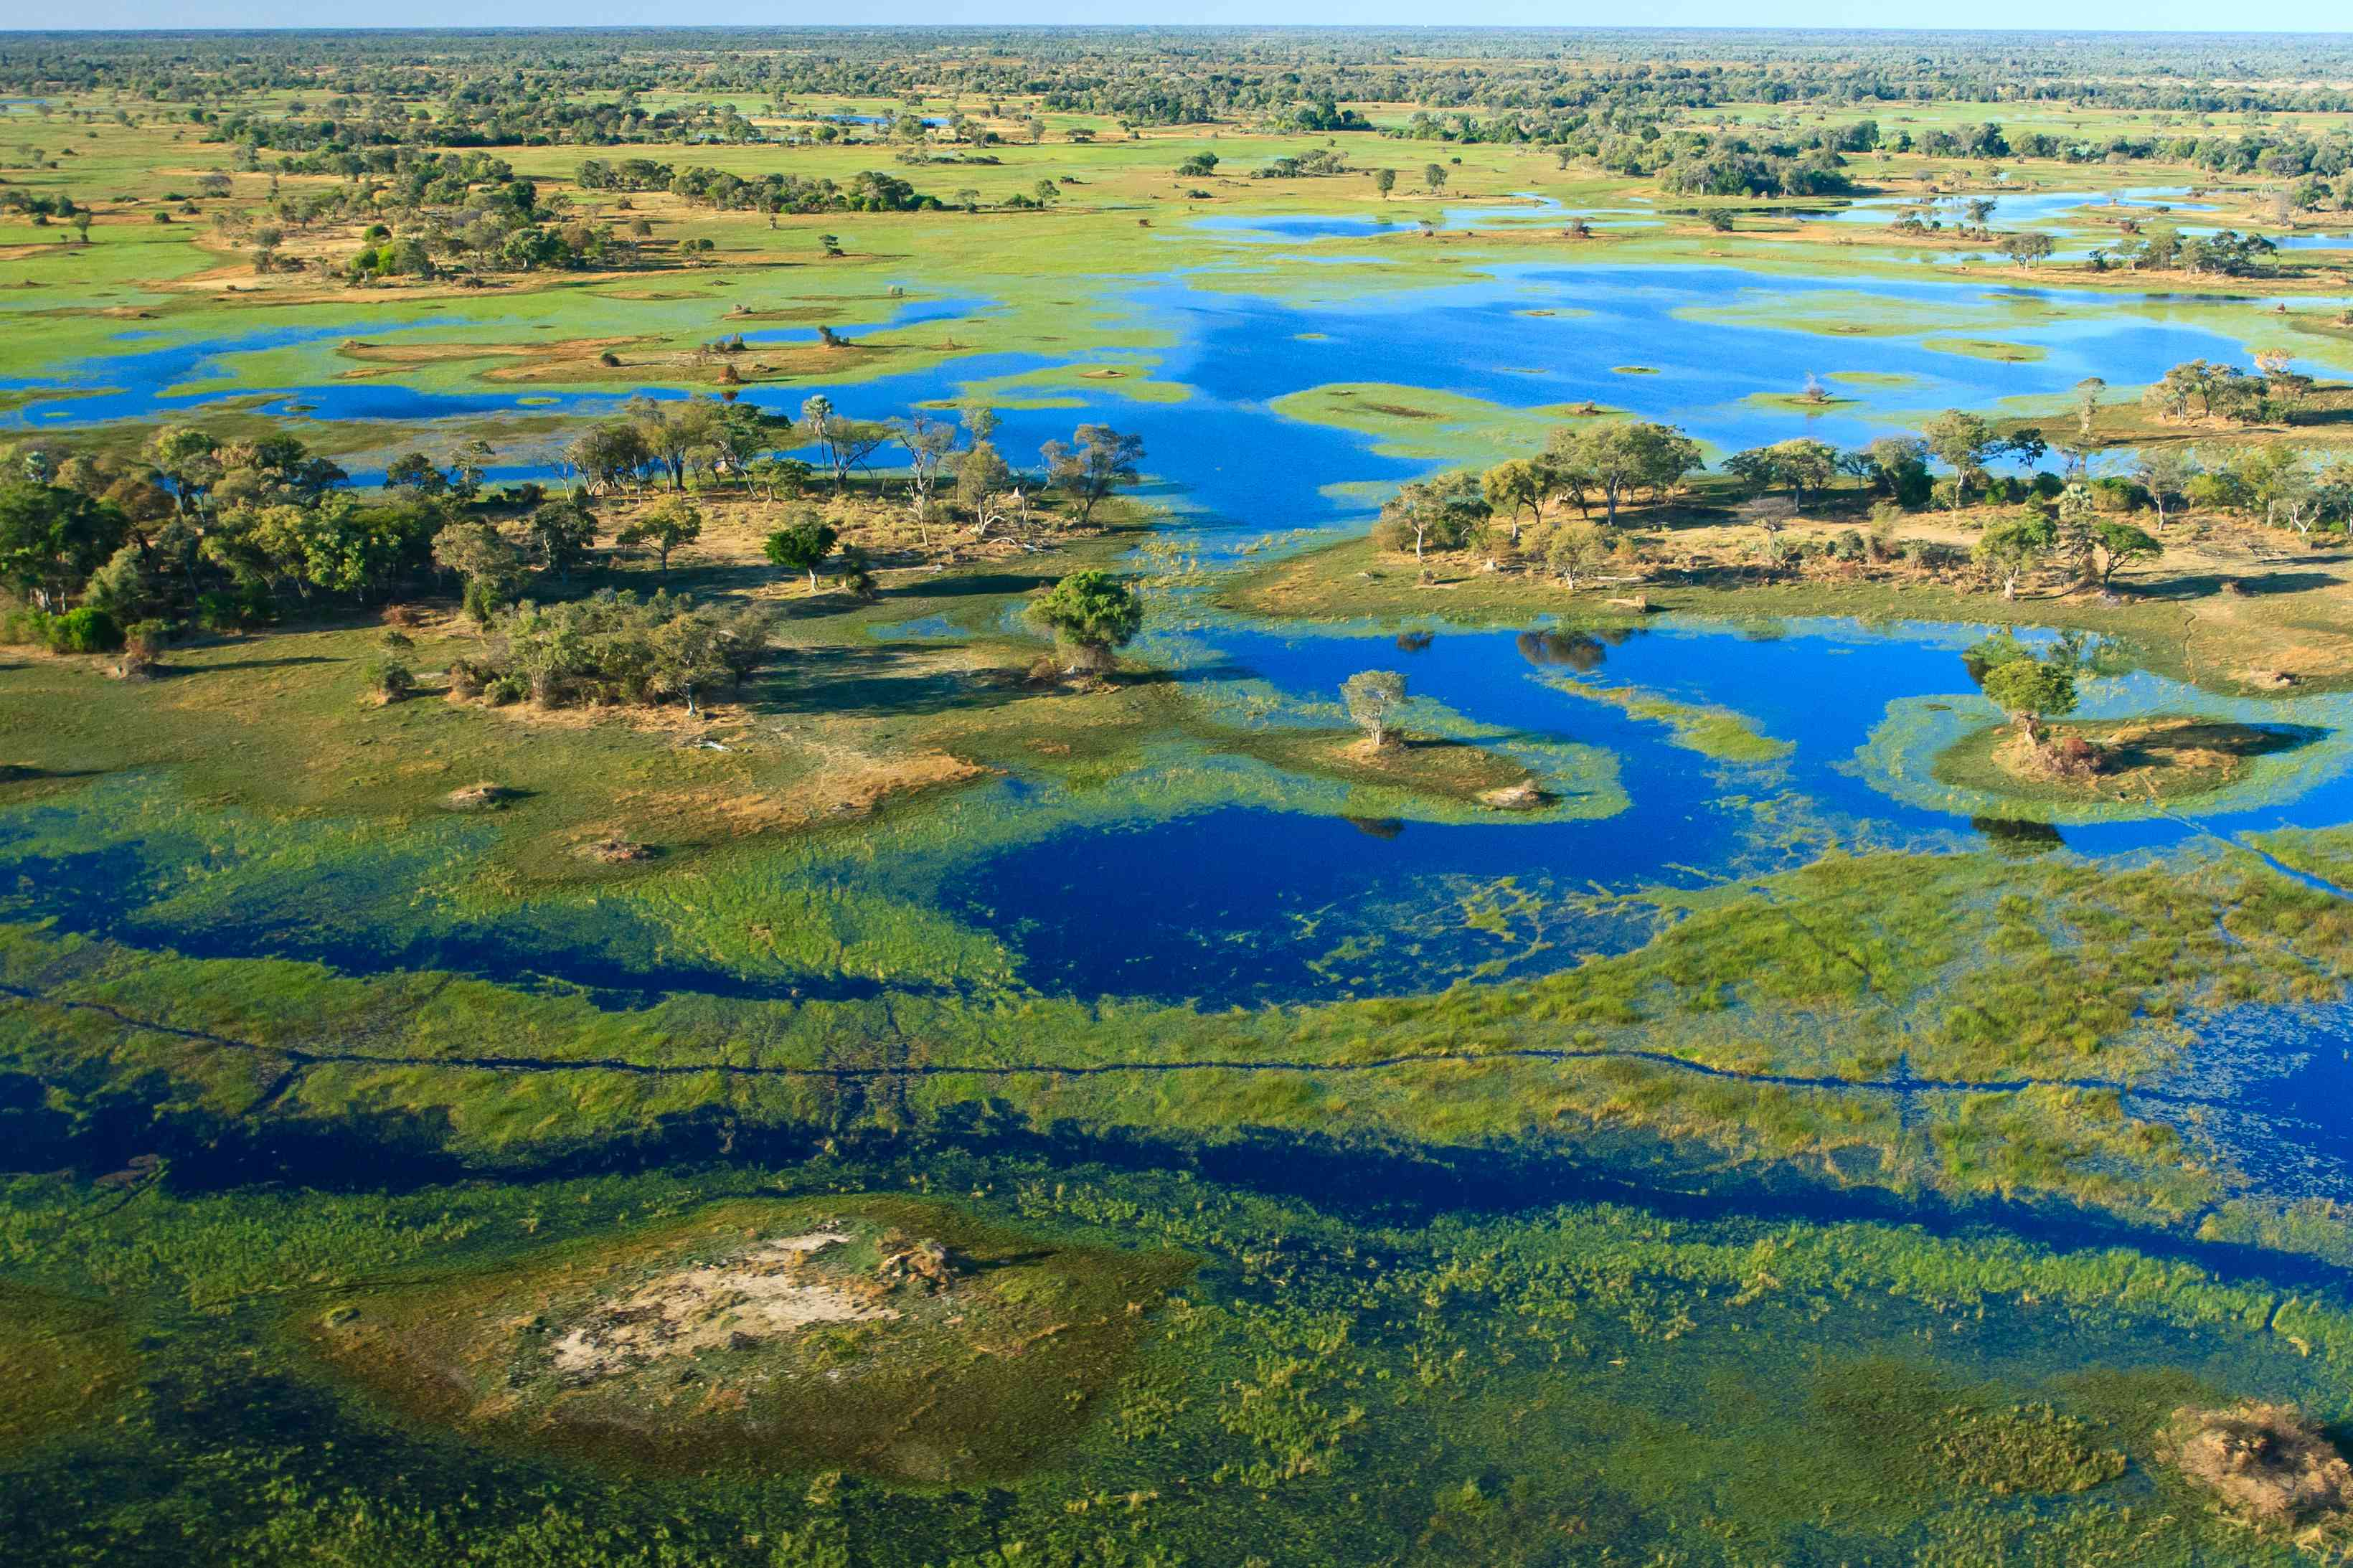 Aerial view of Okavango Delta, an integration of deep blue canals, tree covered island, and marshland